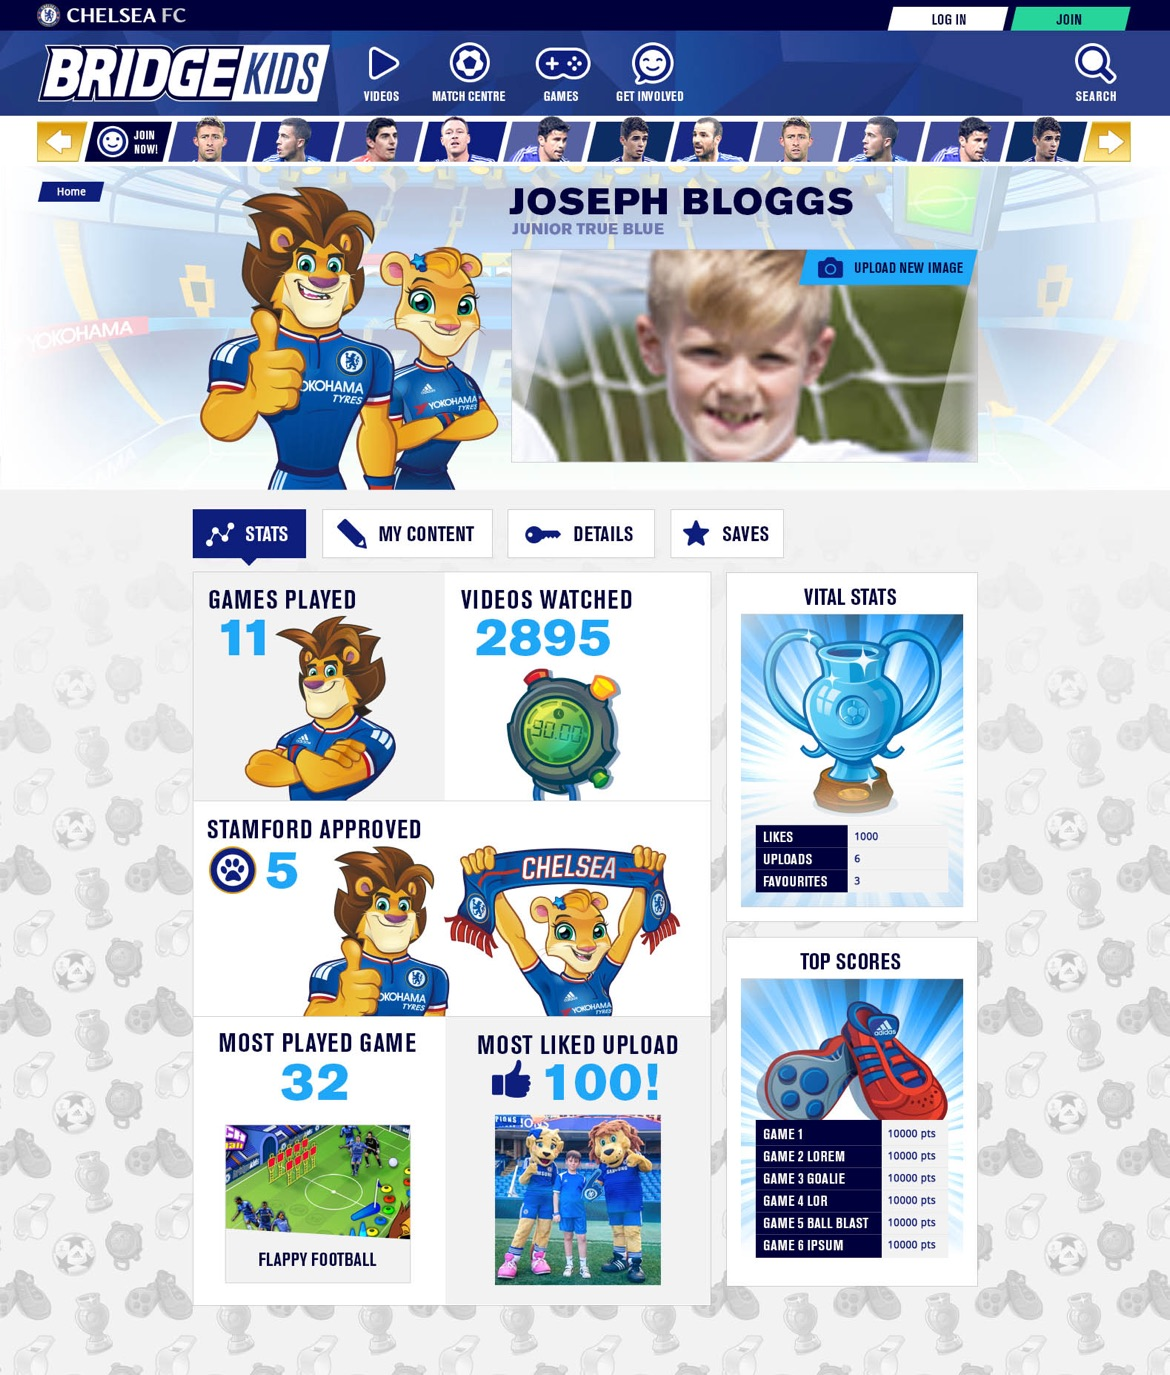 User profile page